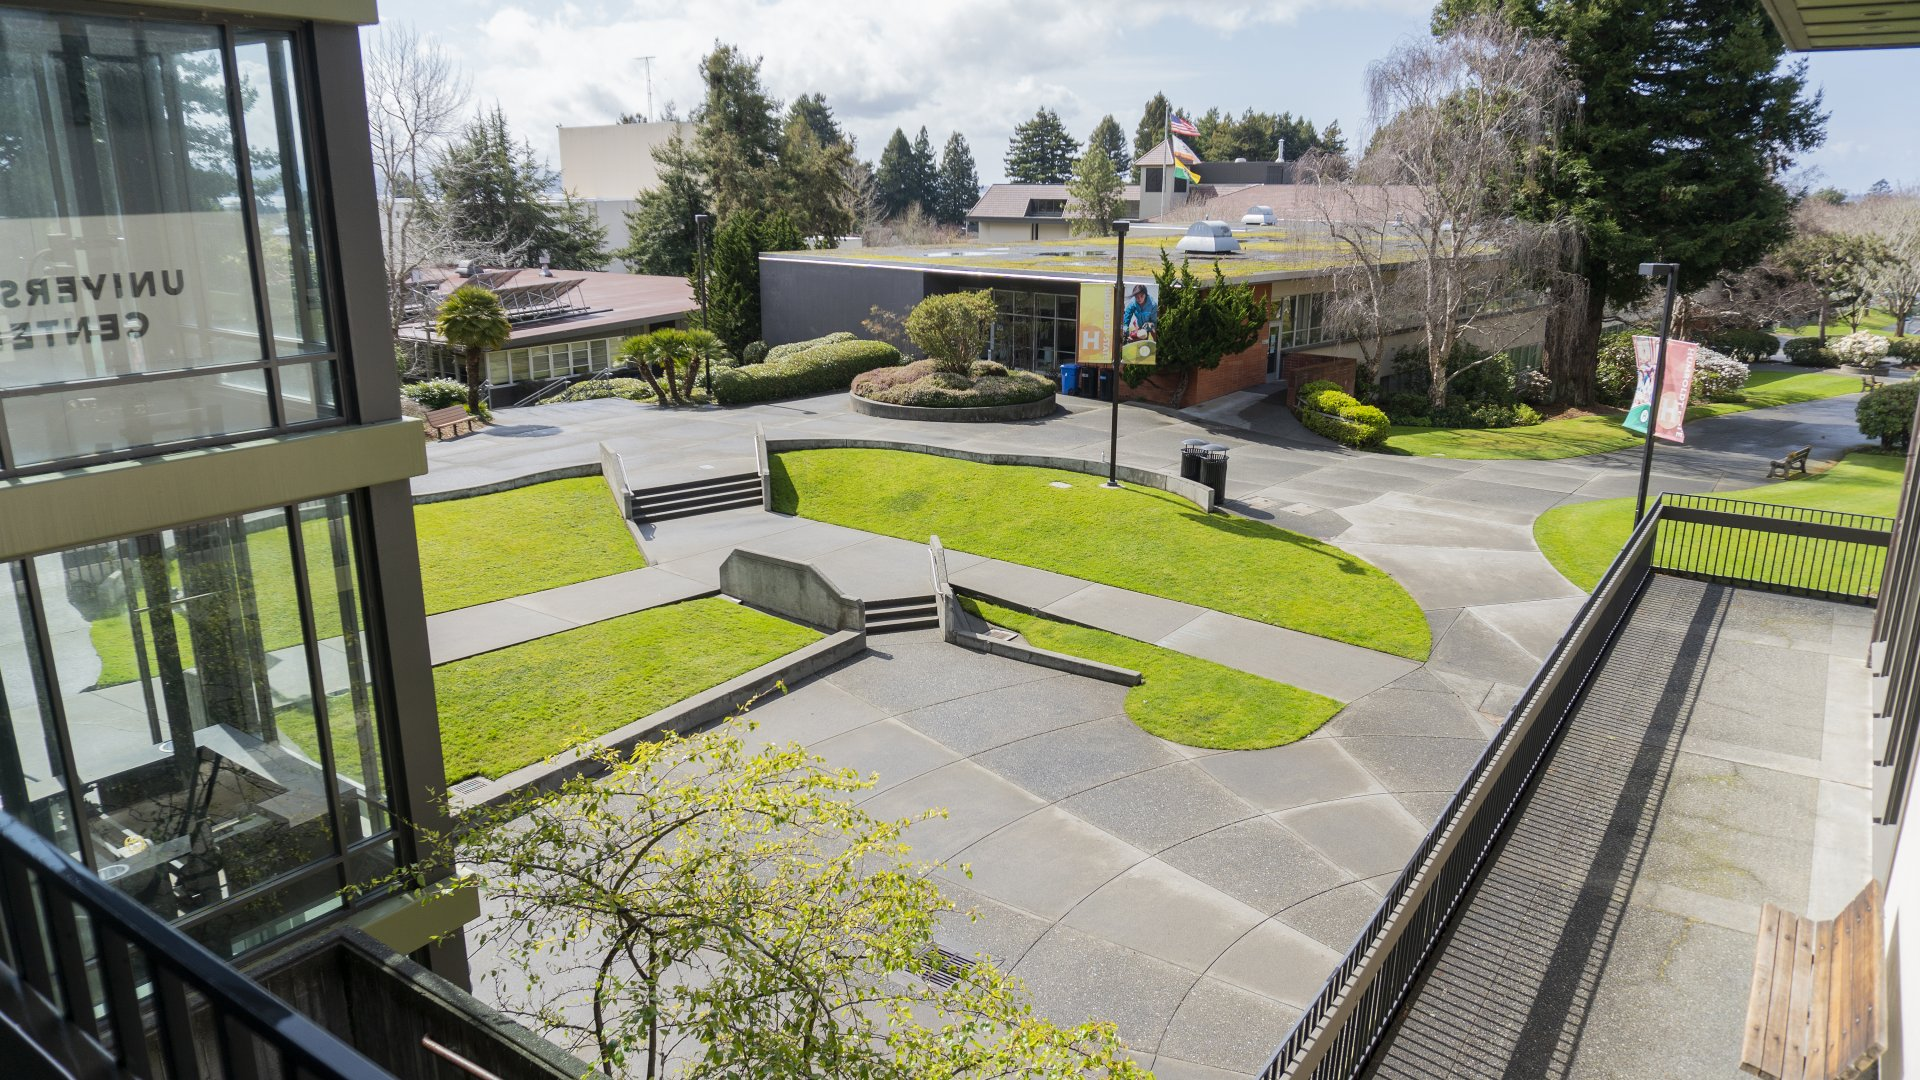 The Humboldt State University campus on March 14 for its first day of spring break following the cancellation of face-to-face classes March 26 through April 17 due to the COVID-19 pandemic. | Photo by James Wilde